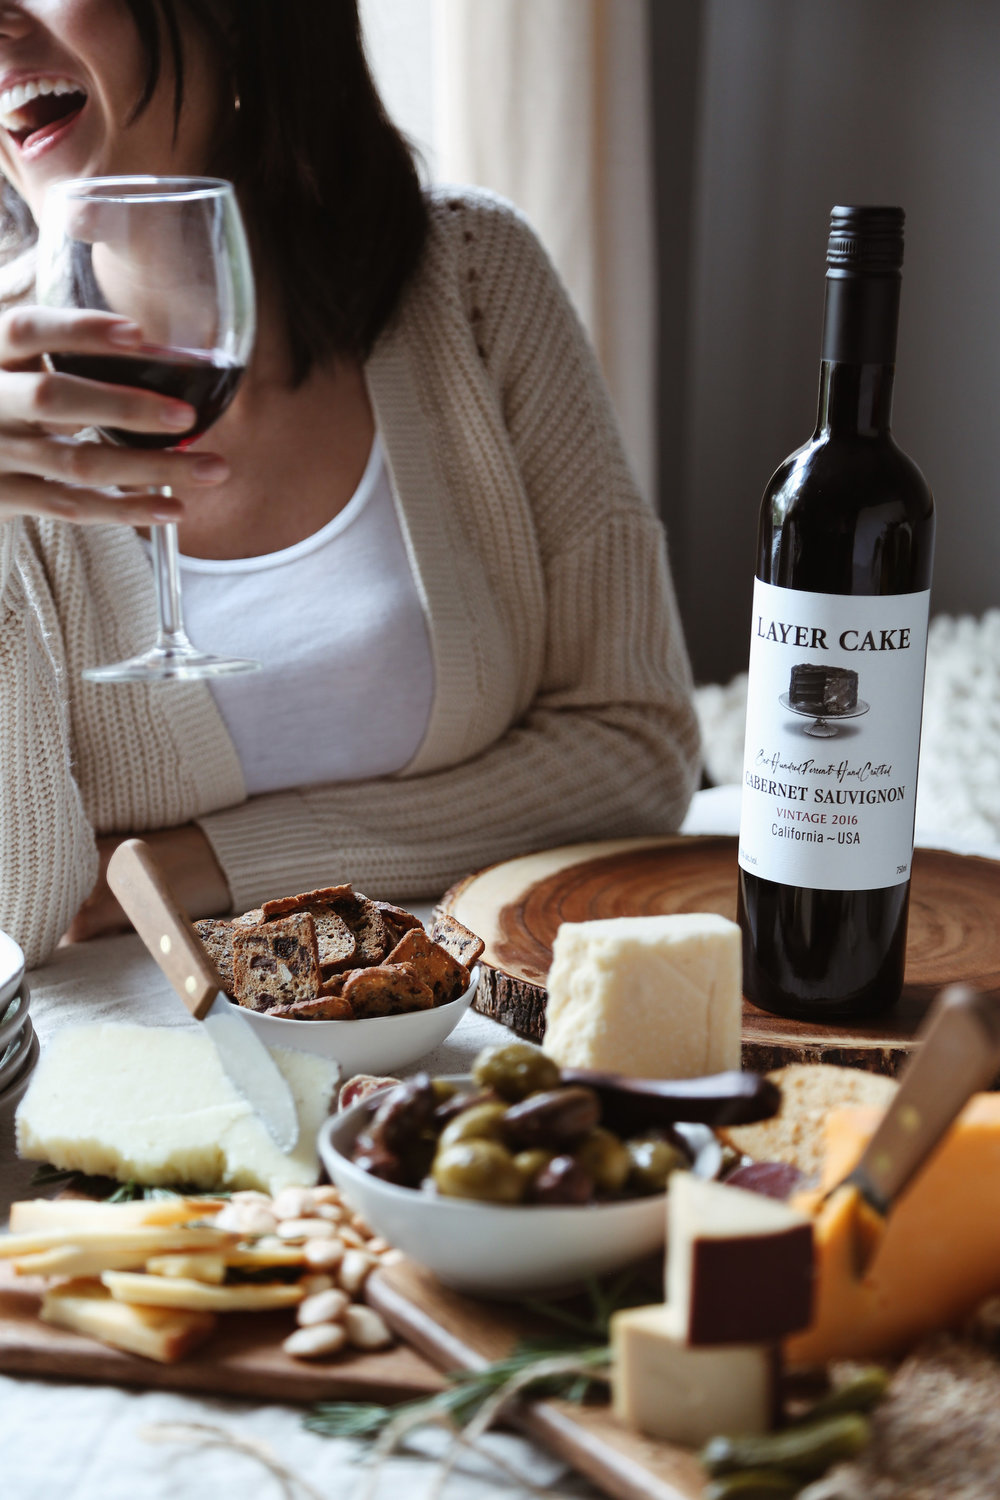 Layer Cake fall wine and cheese pairing-3.jpg